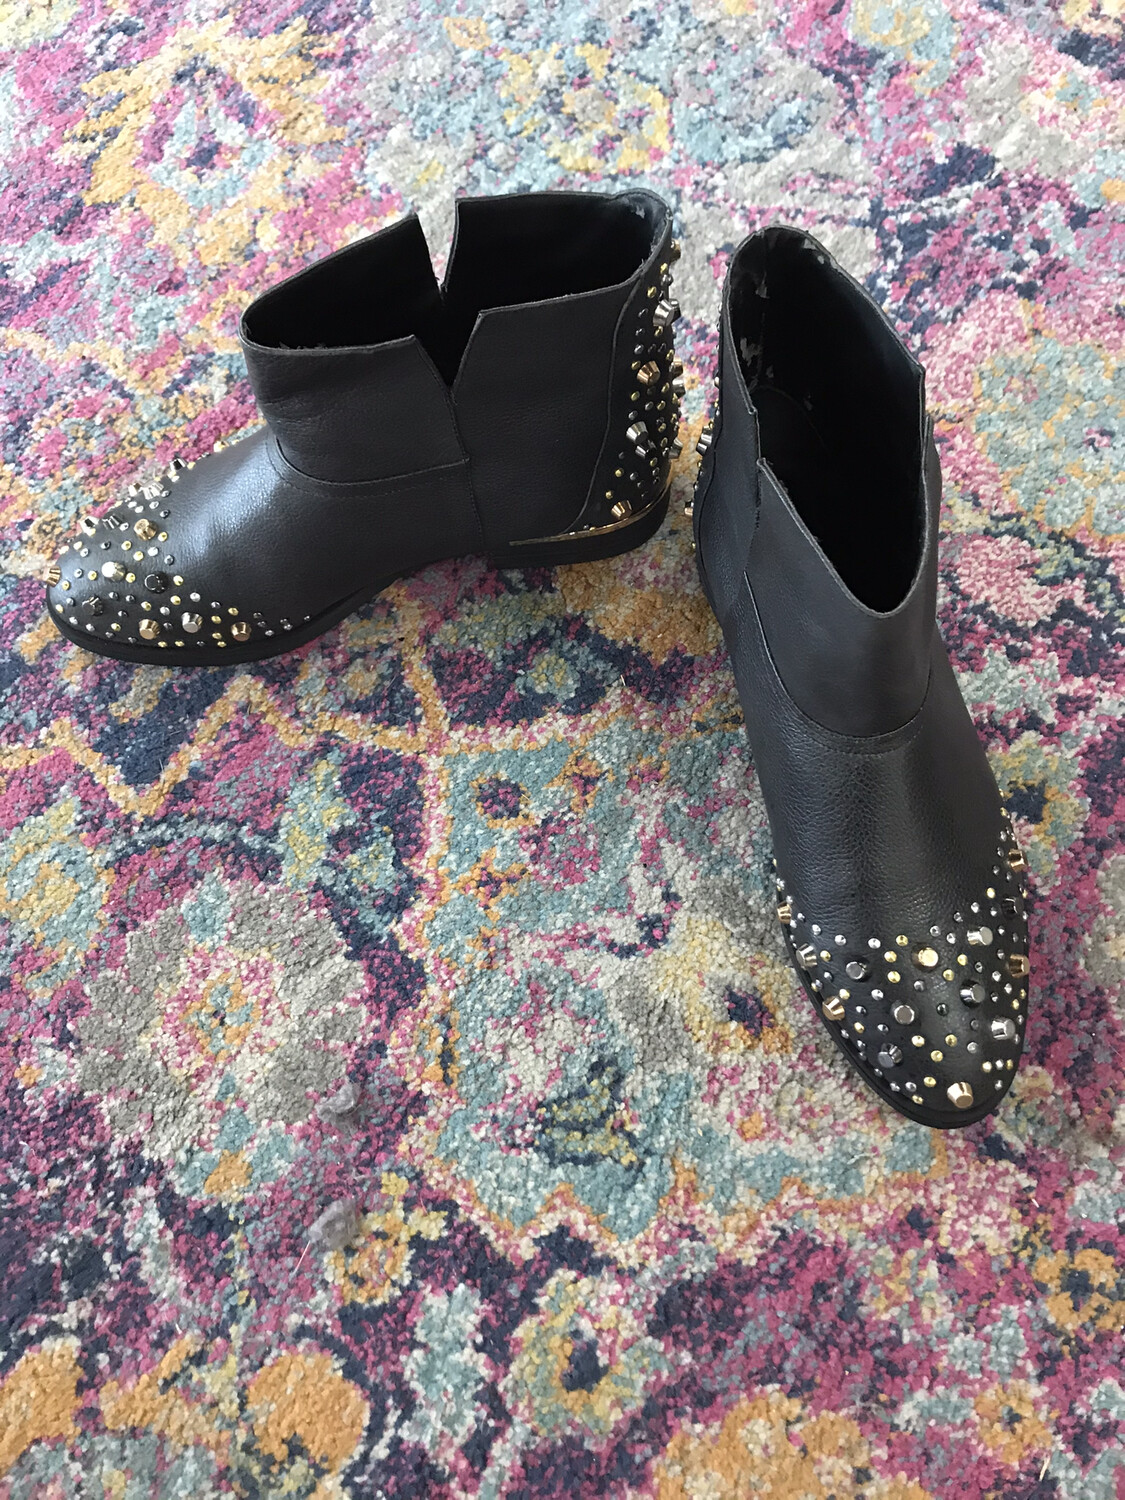 Modern Vice Black Studded Booties - Size 11